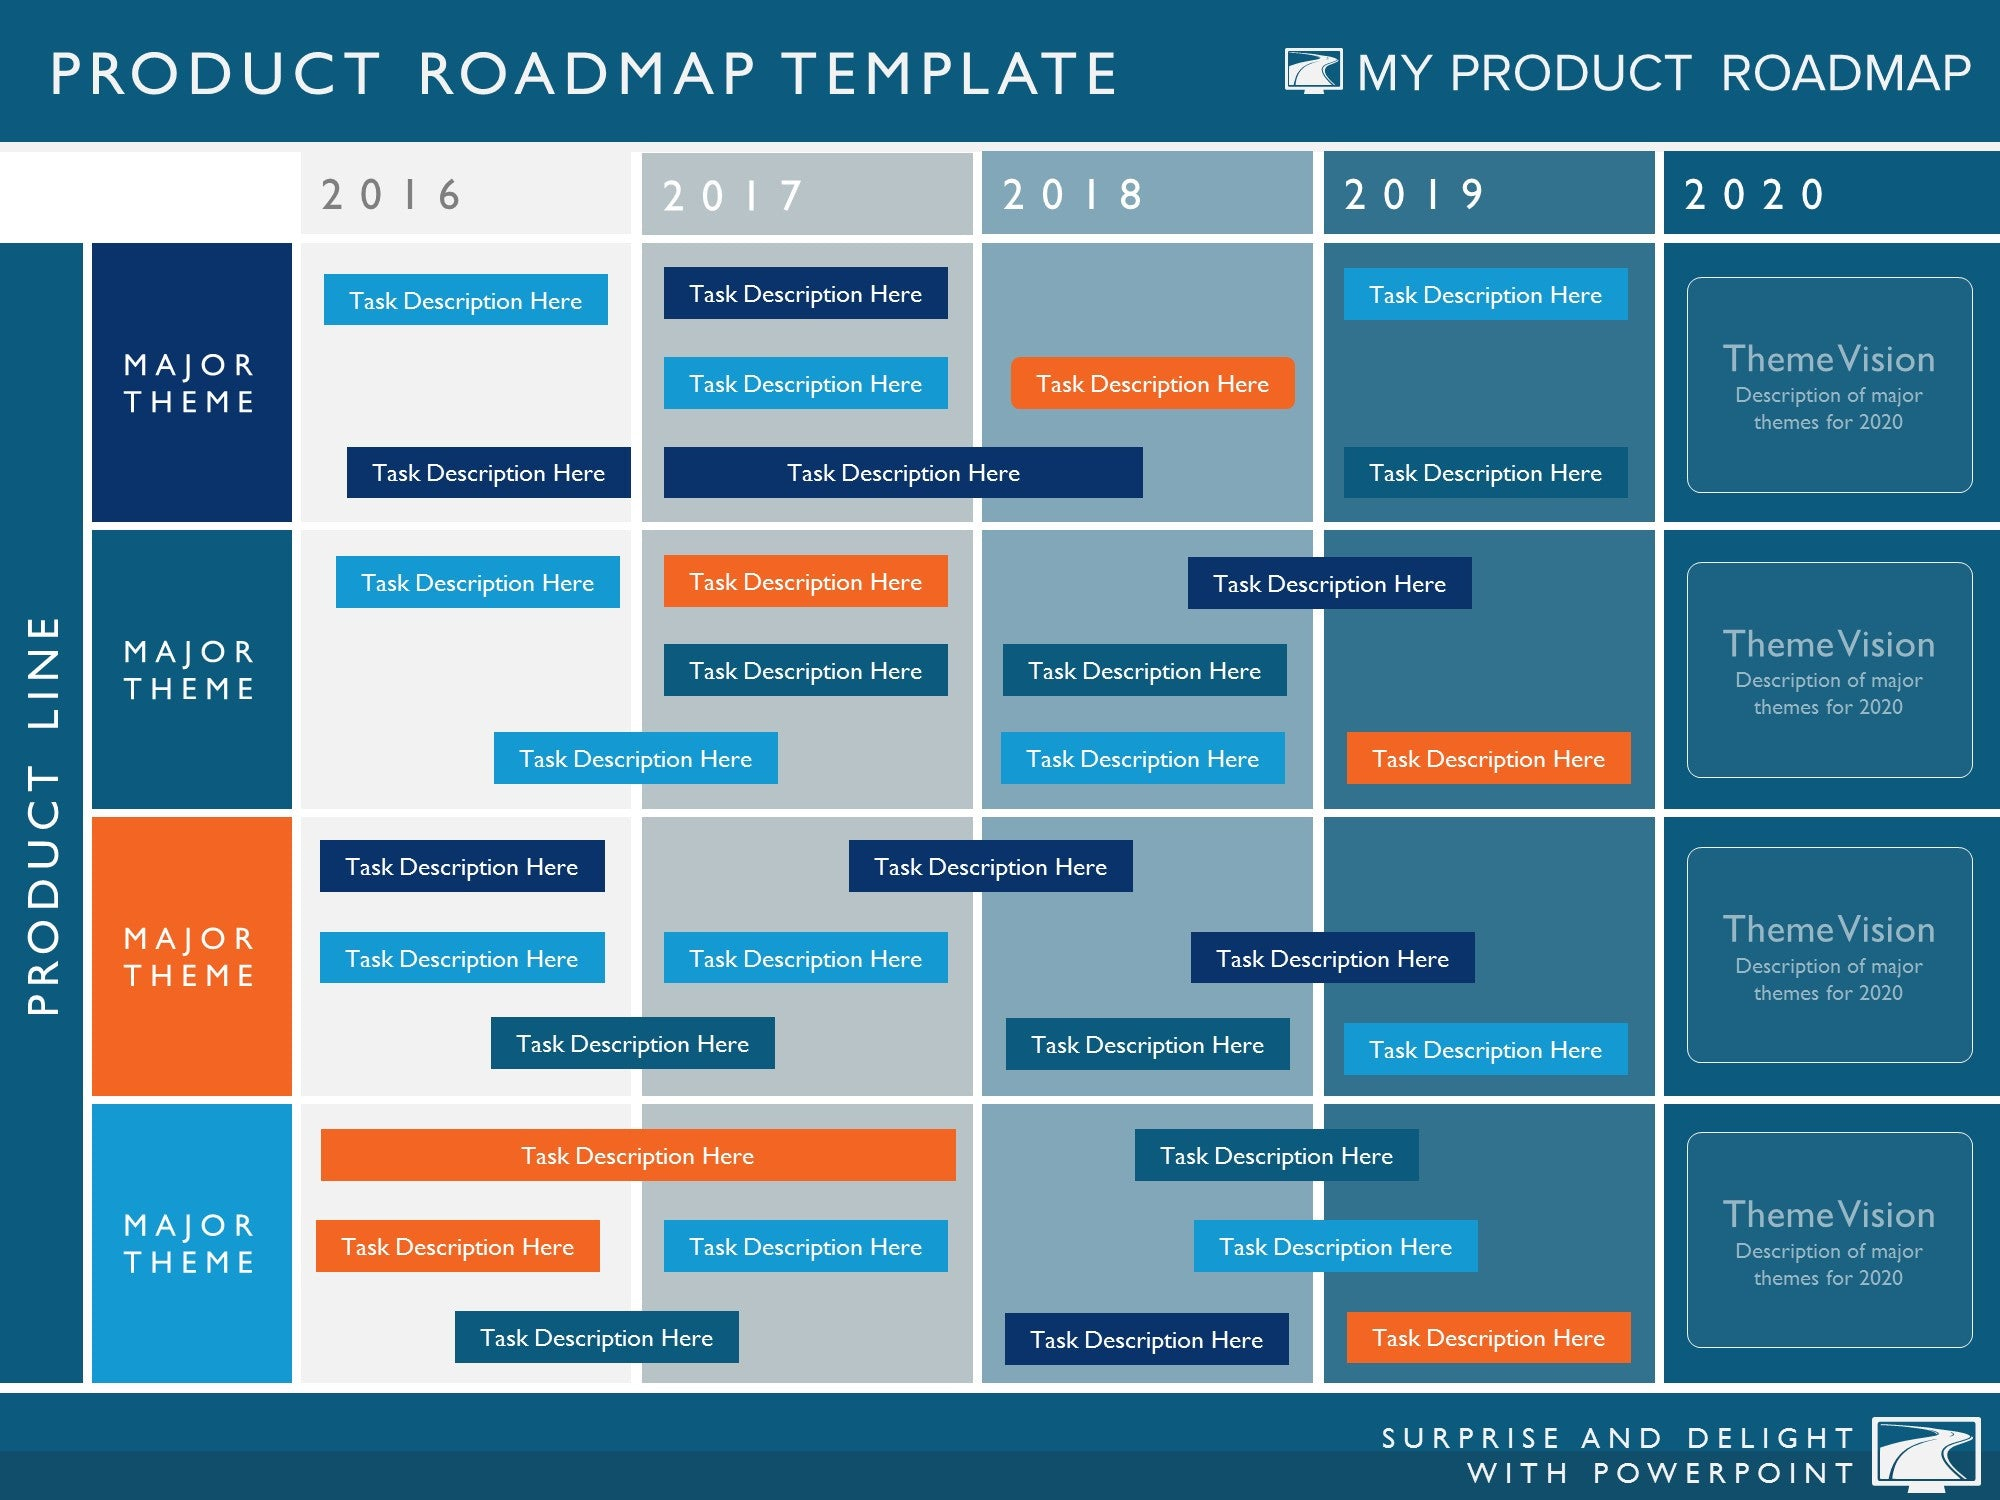 Five phase agile software timeline roadmap powerpoint diagram my product strategy development cycle planning timeline templates stages software management tools ppt manager marketing roadmap template toneelgroepblik Choice Image